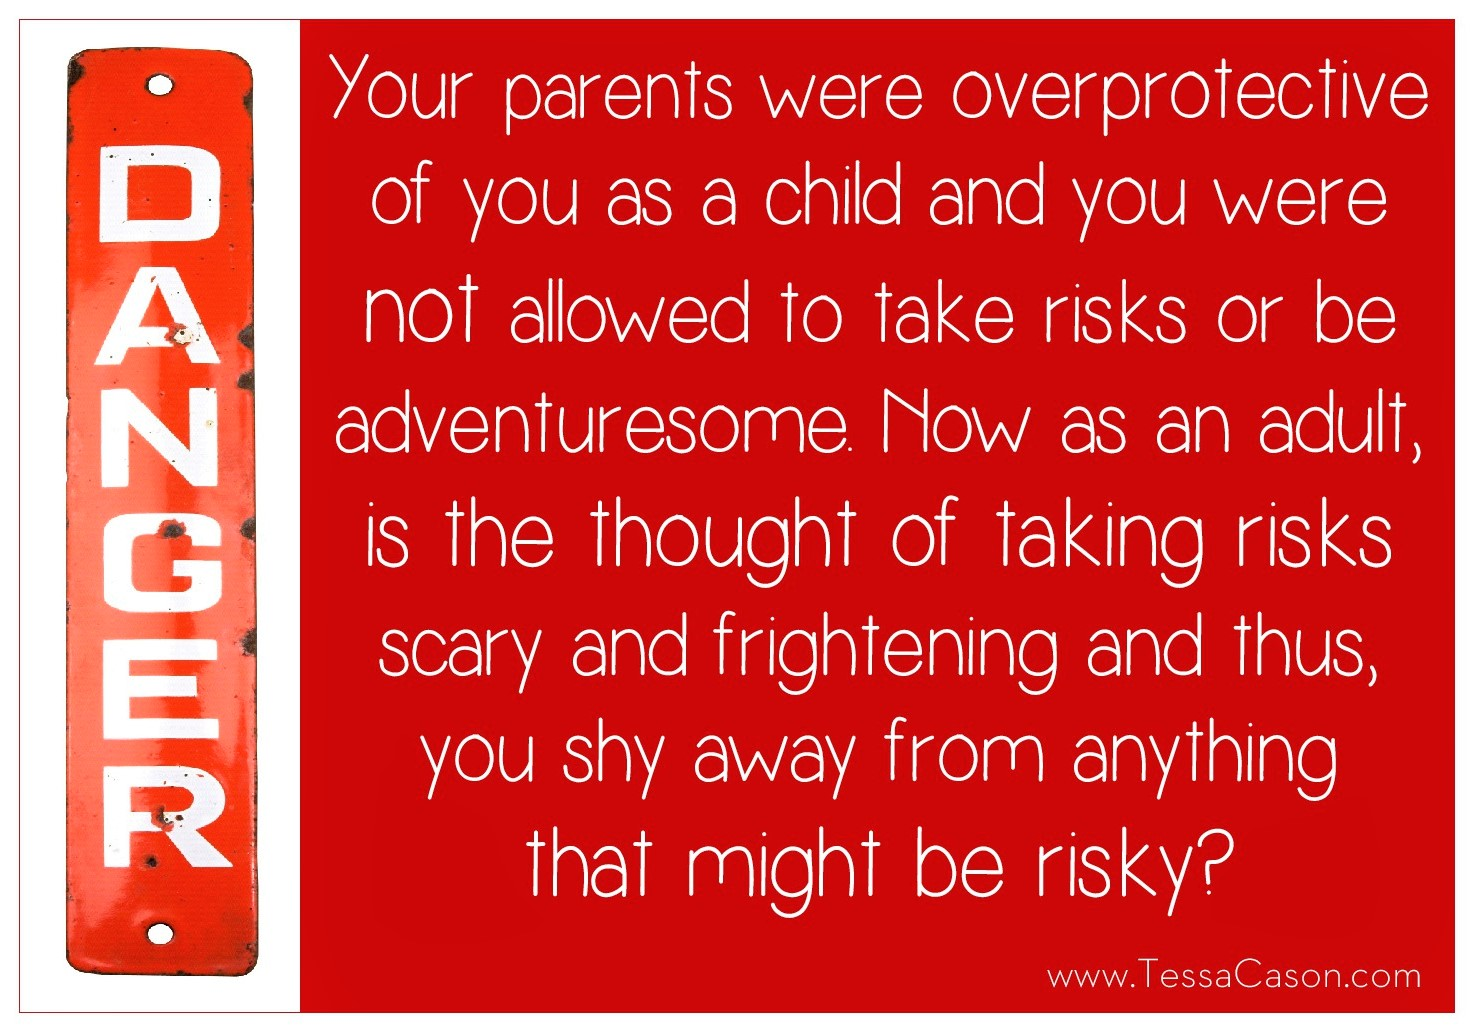 Your Parents were Overprotective Question